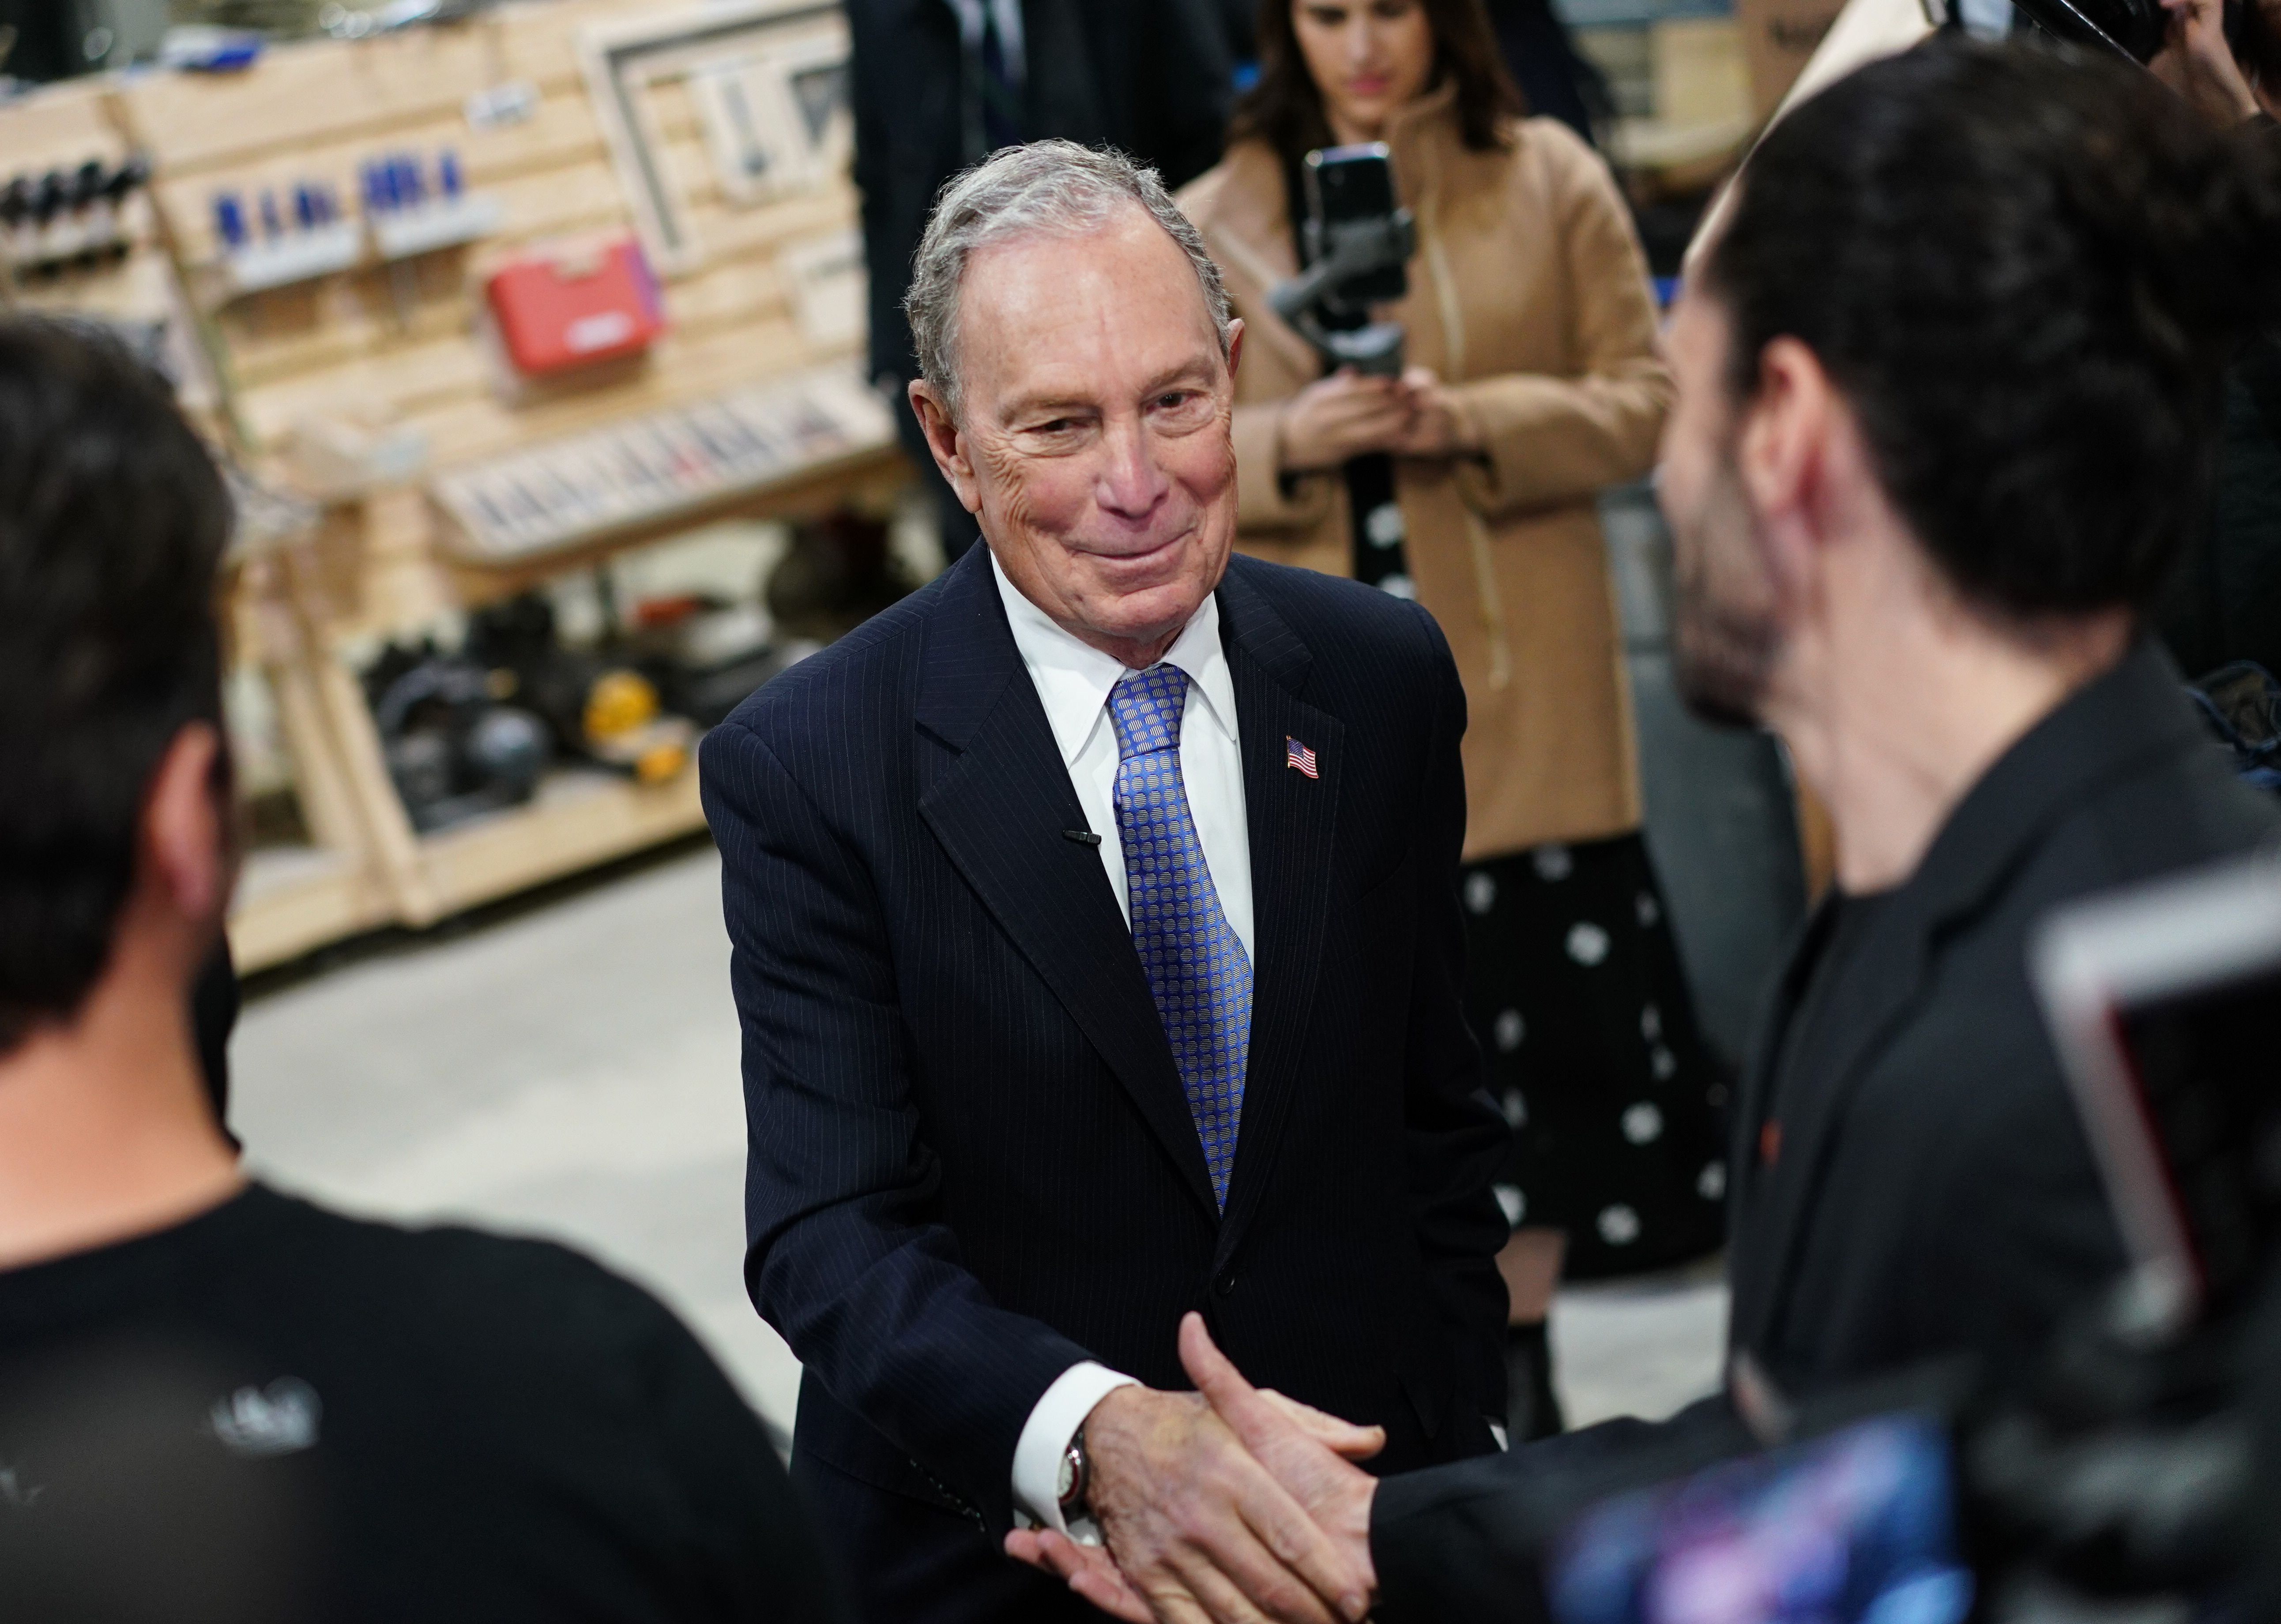 Poll: Mike Bloomberg is now in second place in the Democratic primary